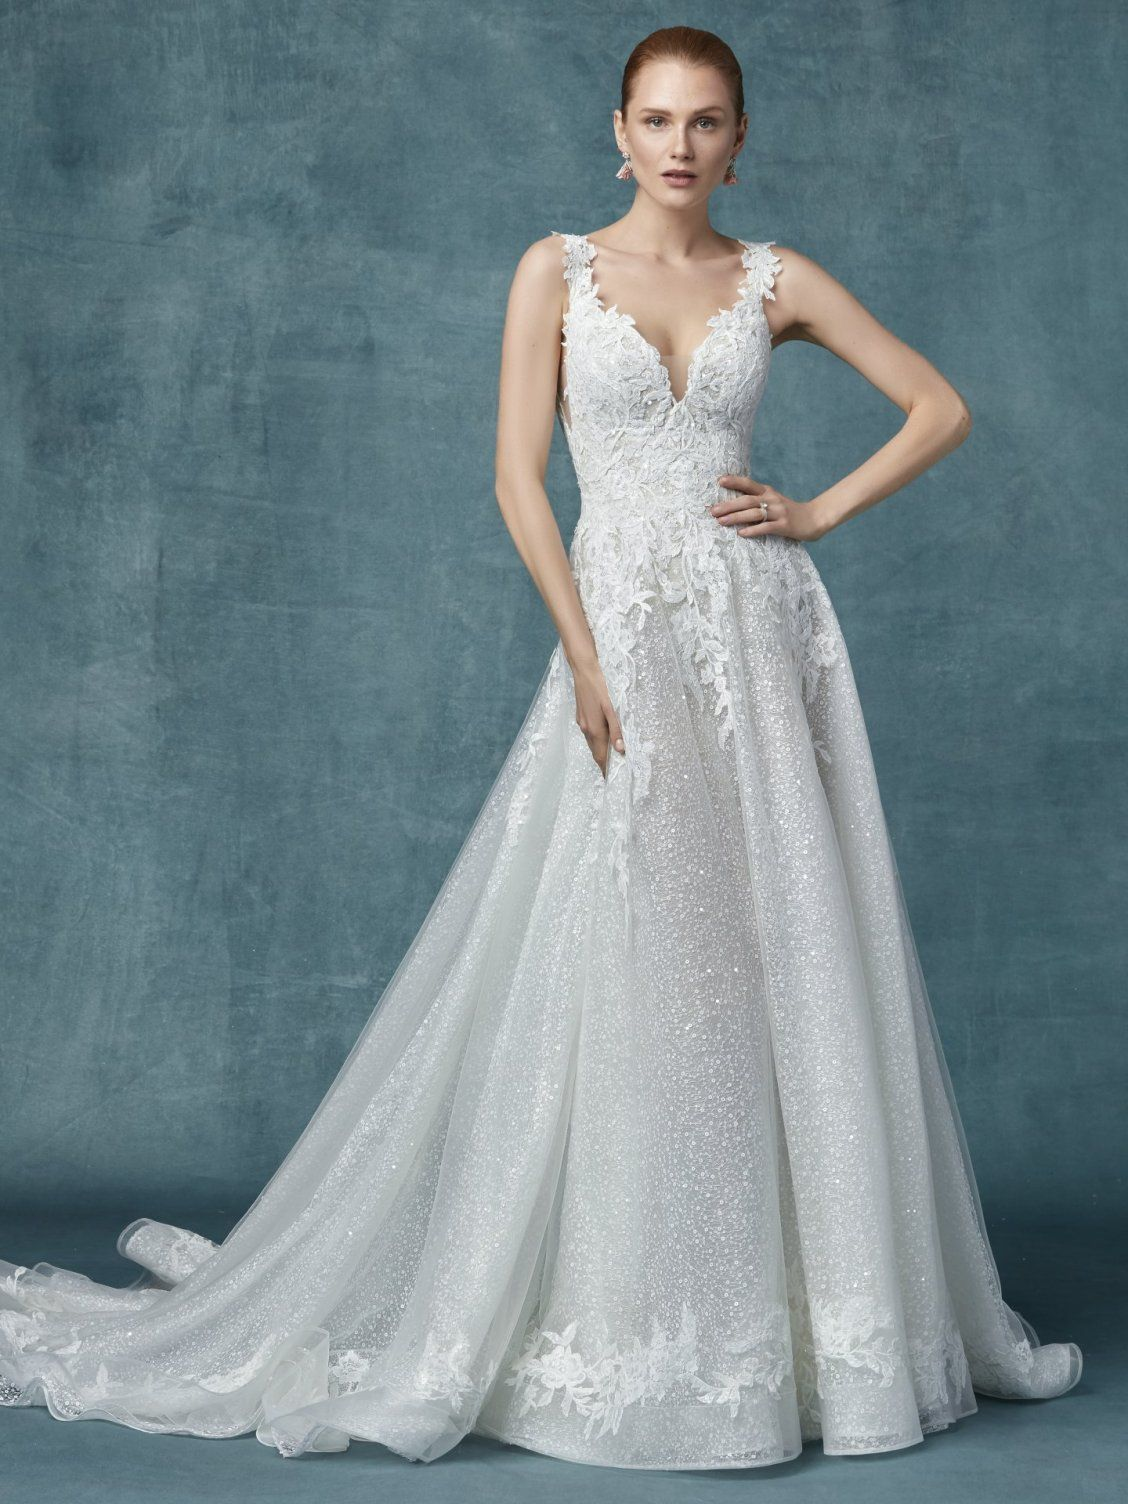 b067f4decf2 ... Romantic lace motifs drift over the bodice and hemline of this unique wedding  dress